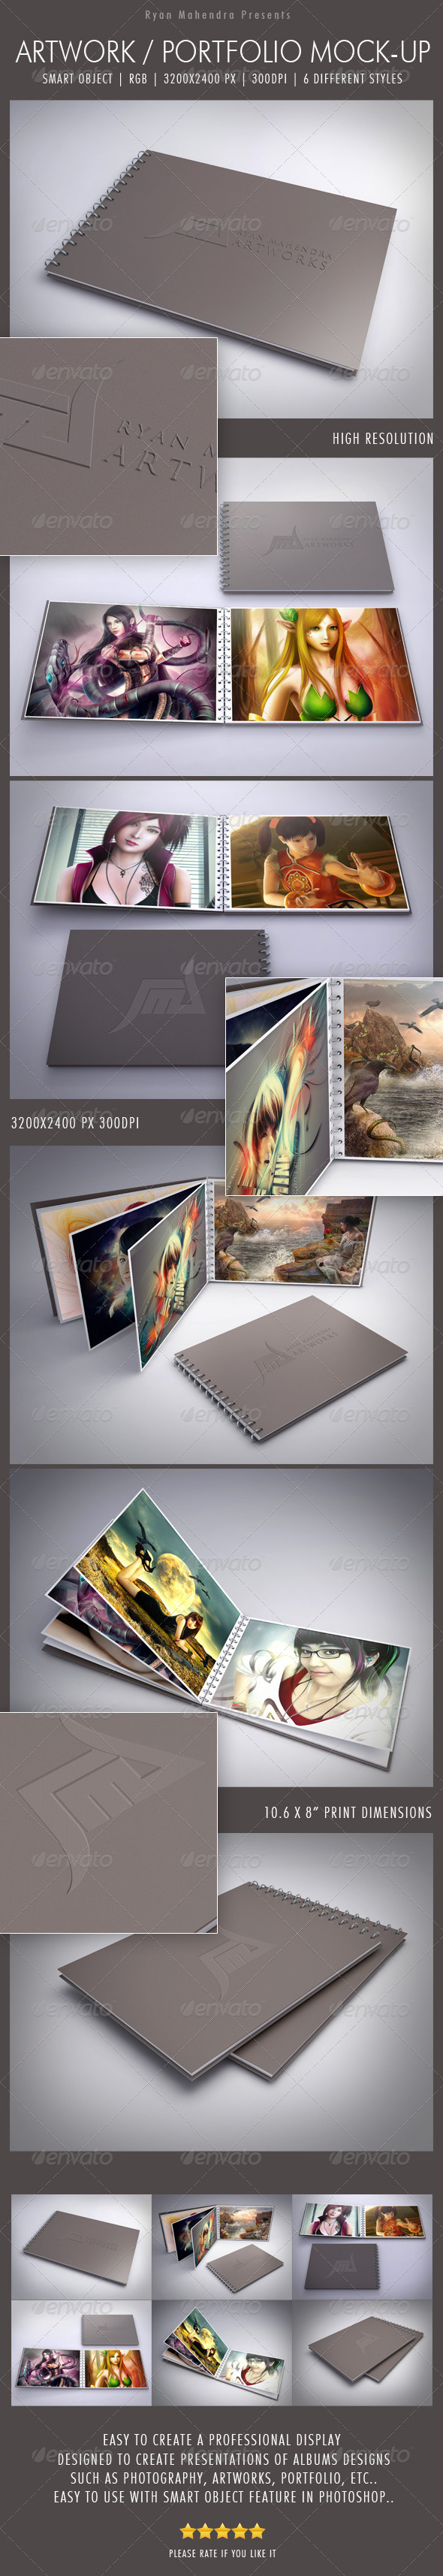 Artwork / Portfolio Mock-Up - Books Print